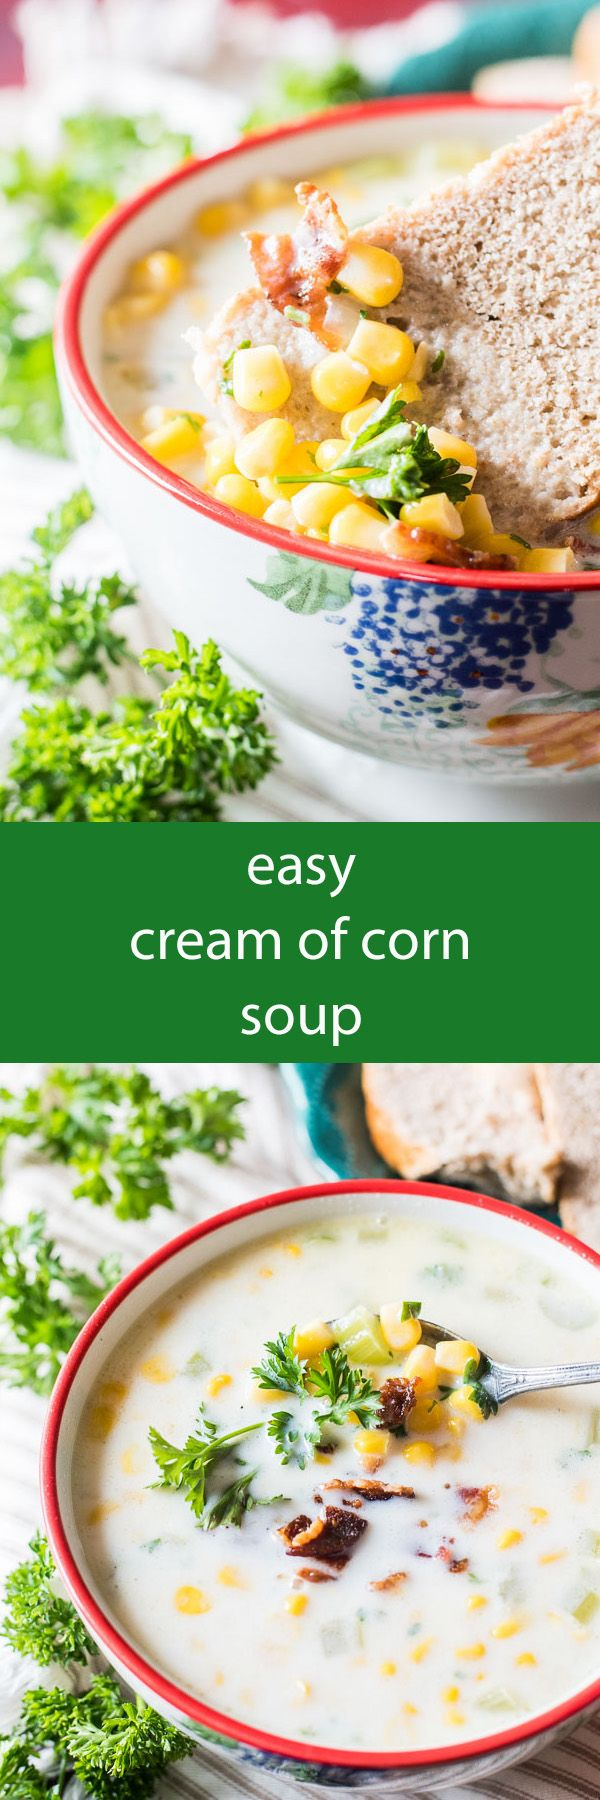 An easy, cream of corn soup made on your stove top. This comforting soup pairs well with a crusty bread and side salad. An Amish country favorite recipe.